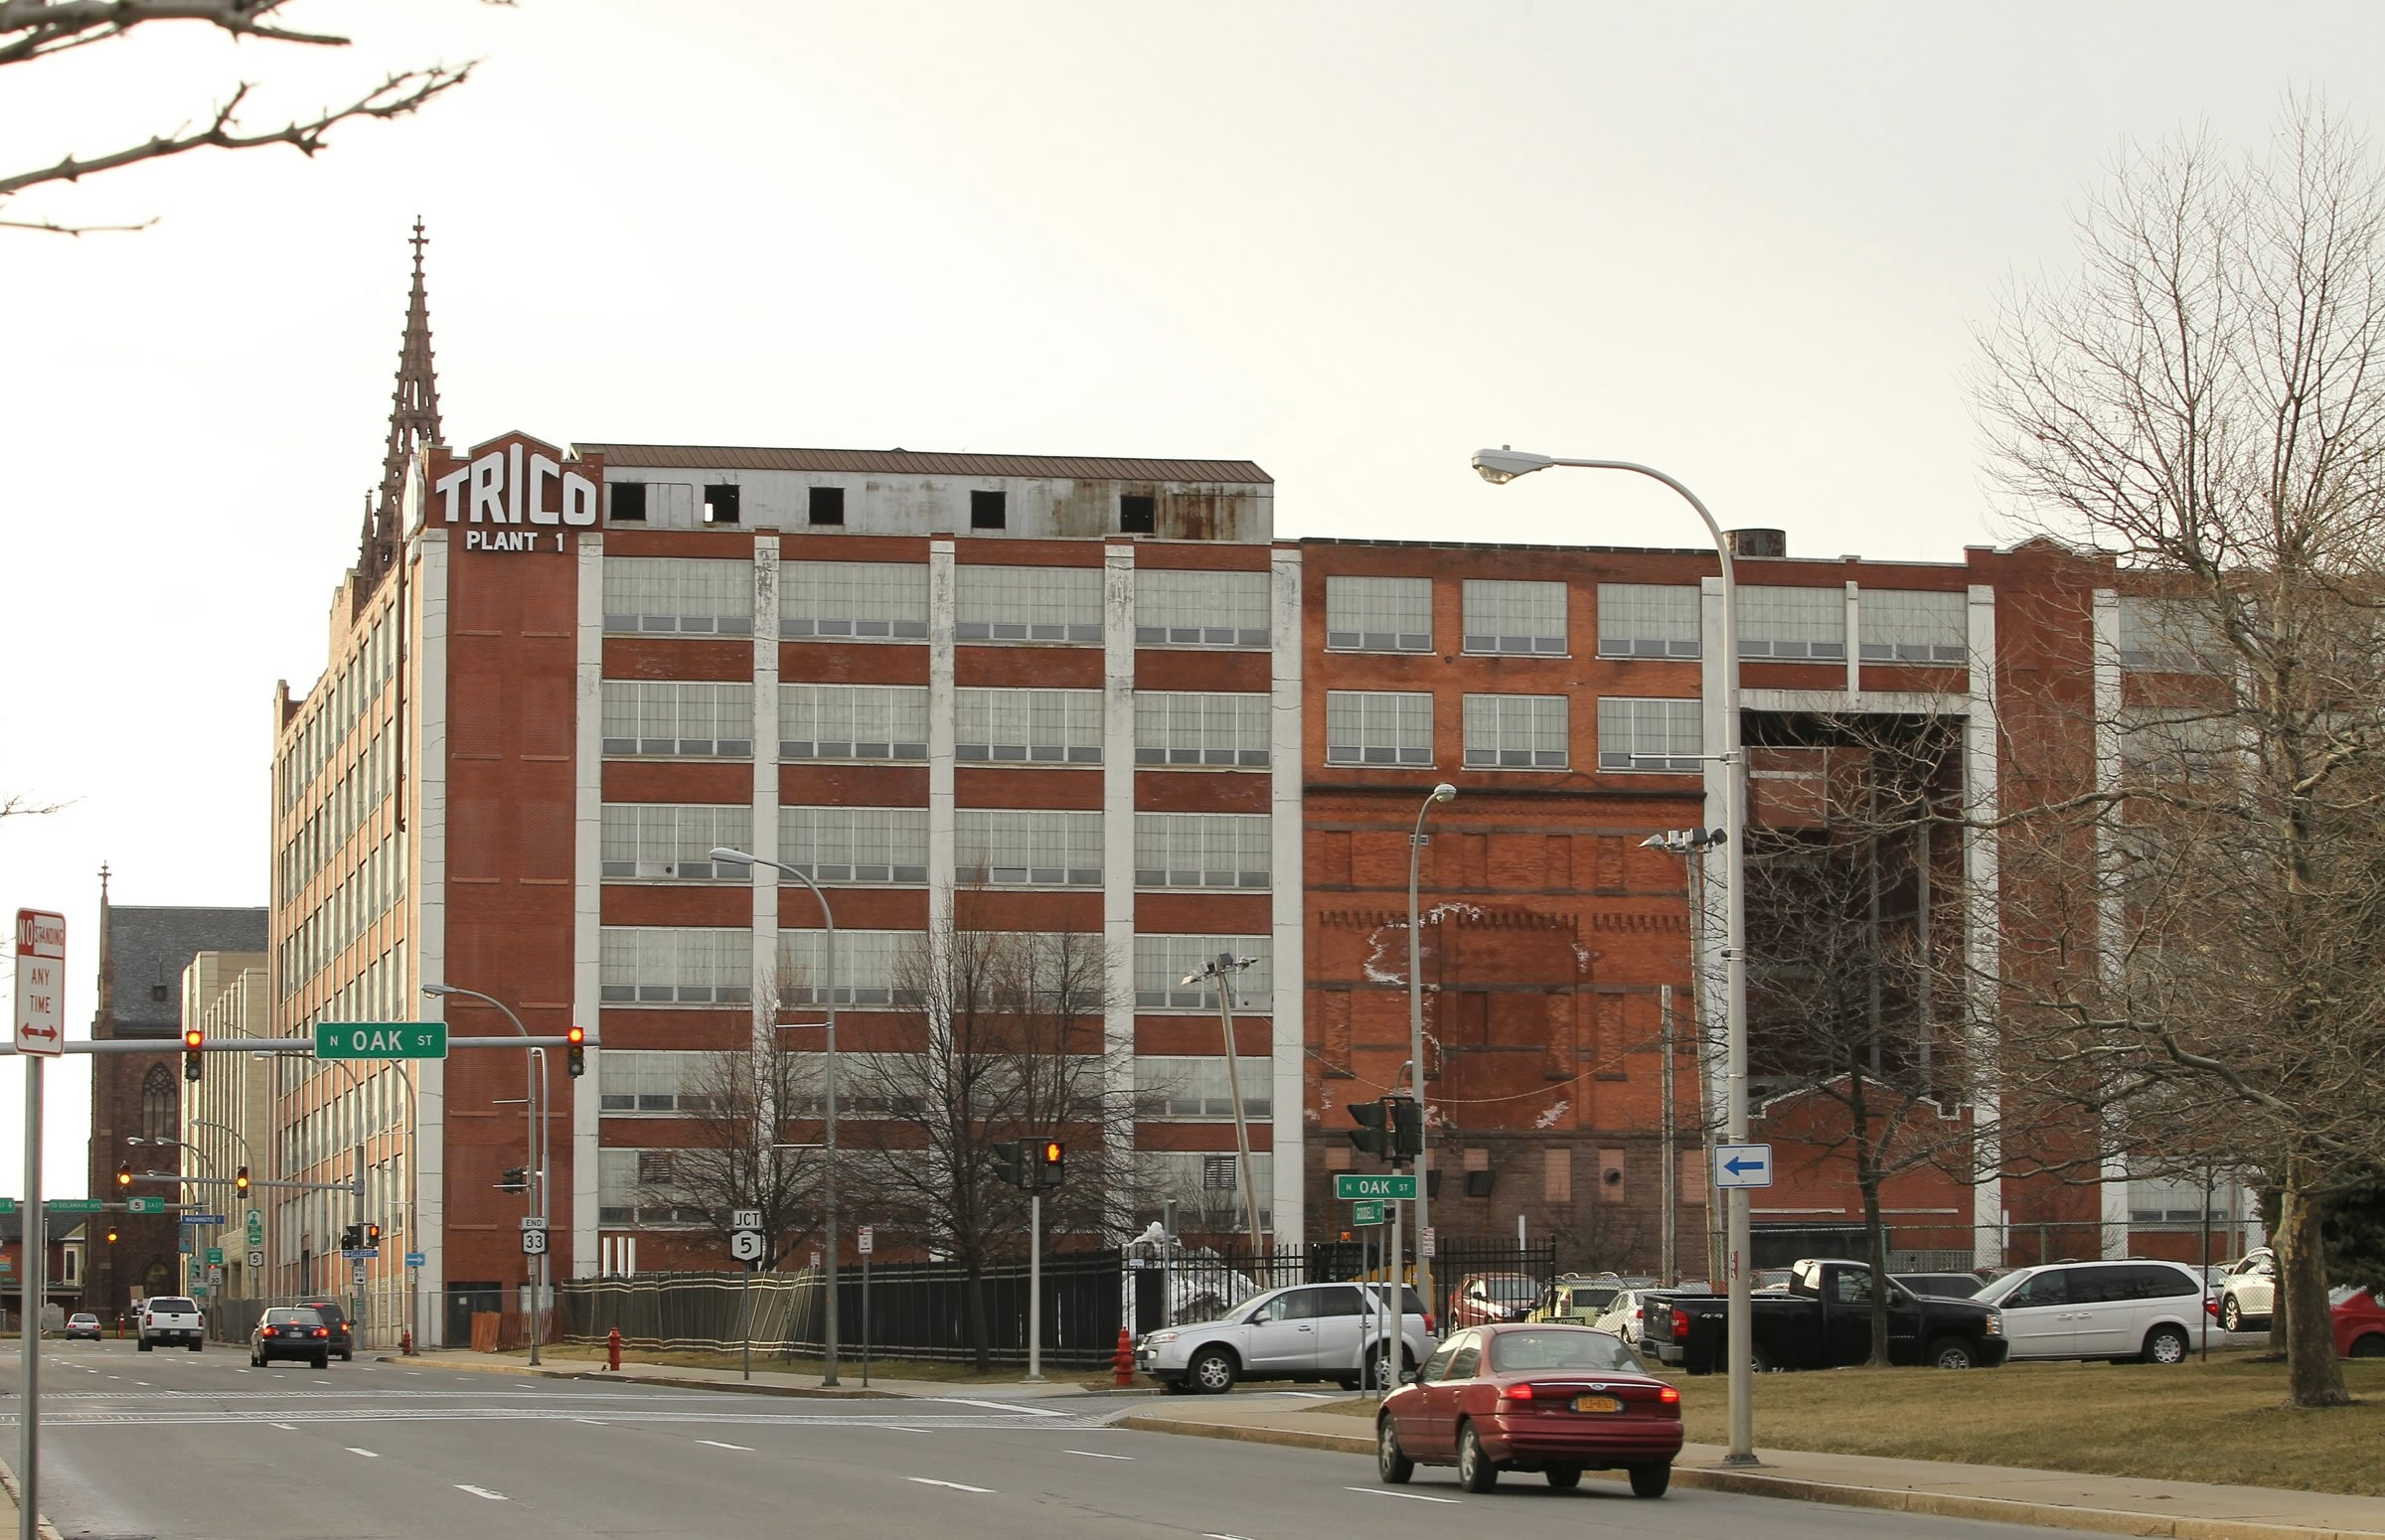 $50 million redevelopment plan announced for Trico building in Buffalo